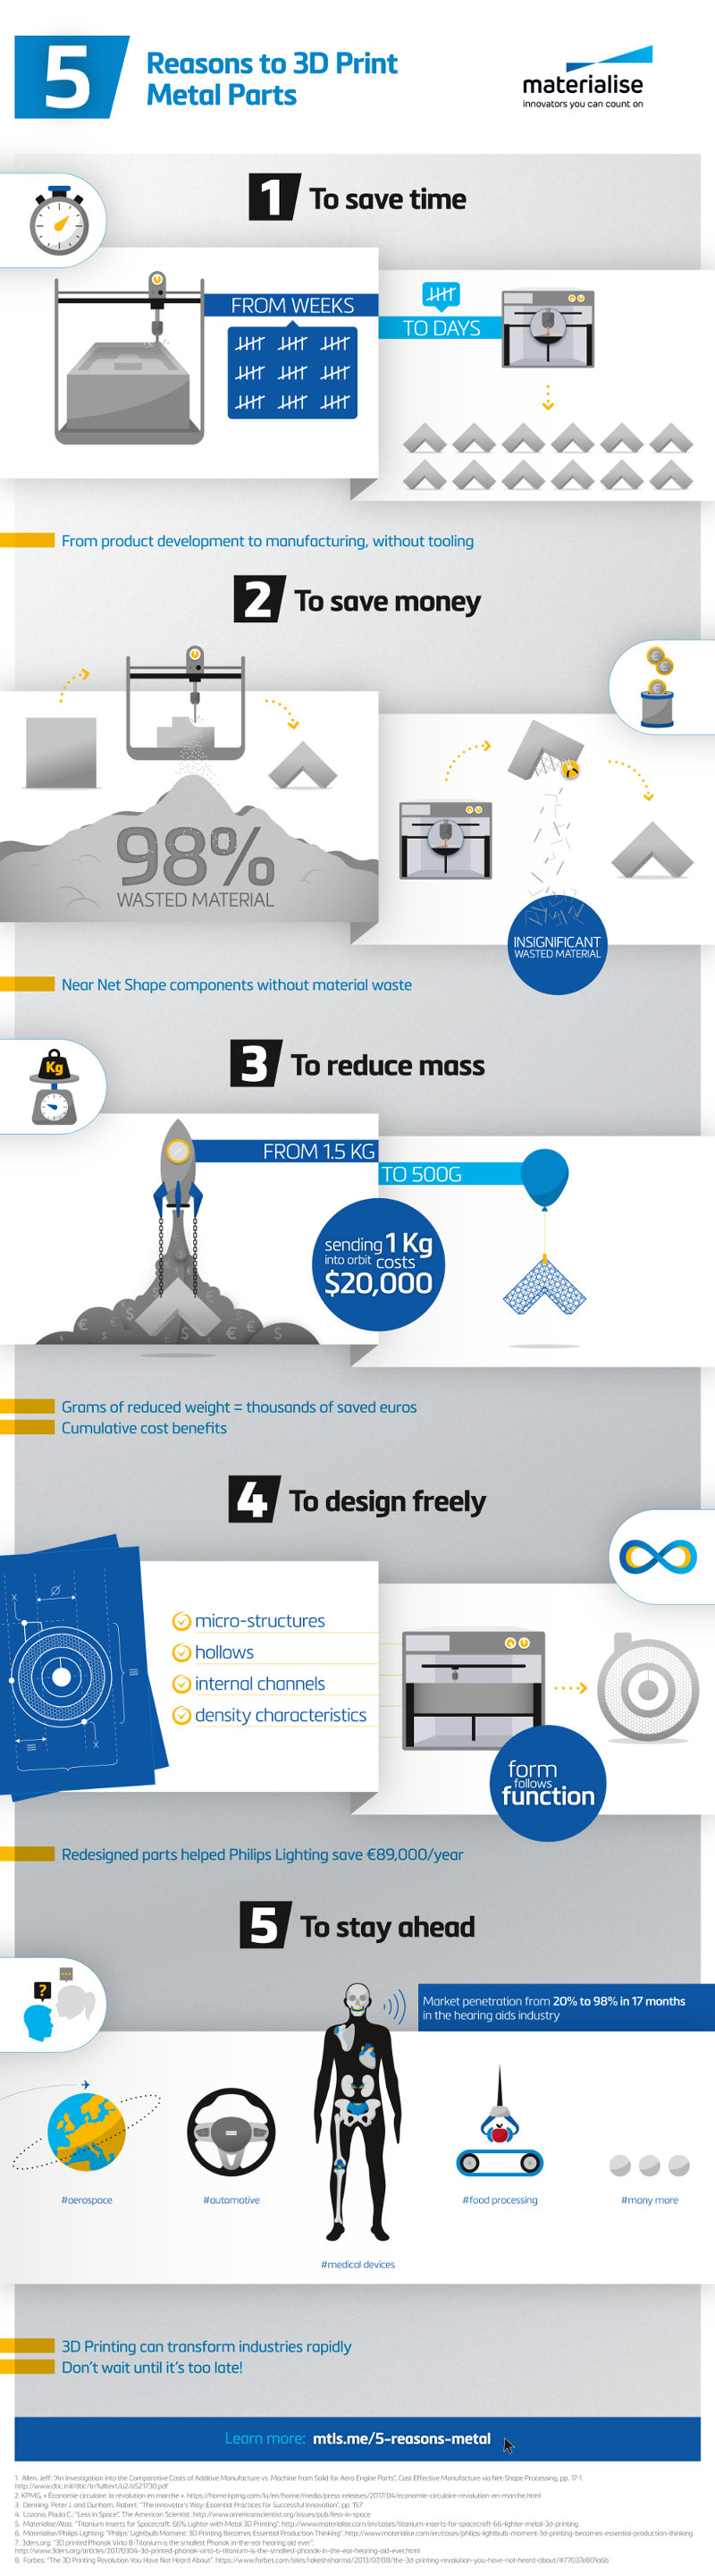 Infographic: 5 Reasons to 3D Print Metal Parts